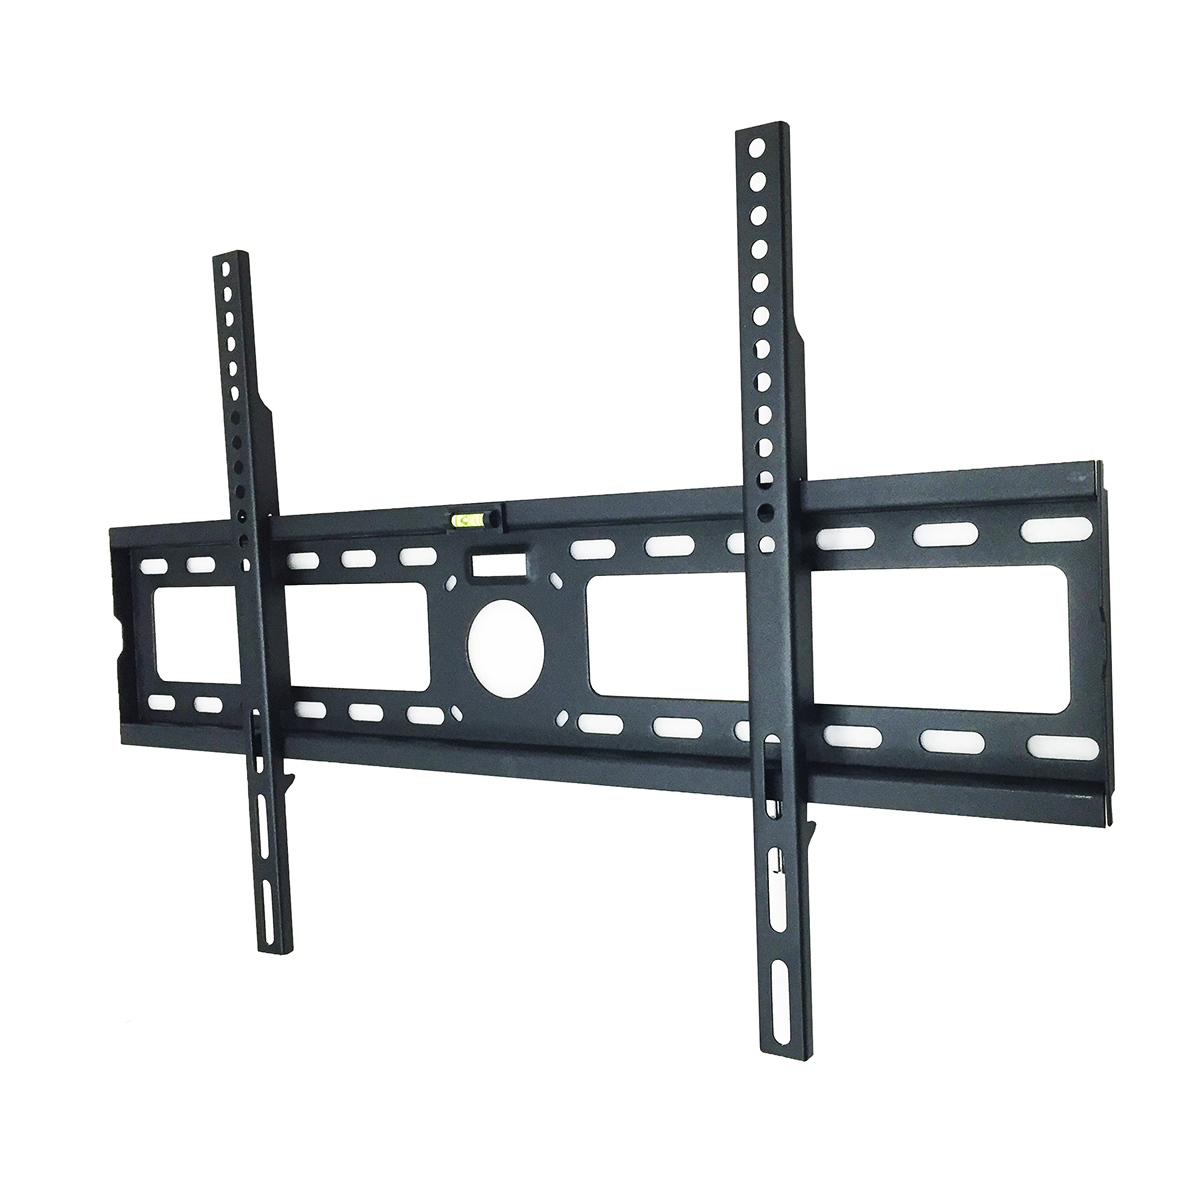 Ultra Slim TV Wall Mount Bracket 32 37 40 42 46 47 50 55